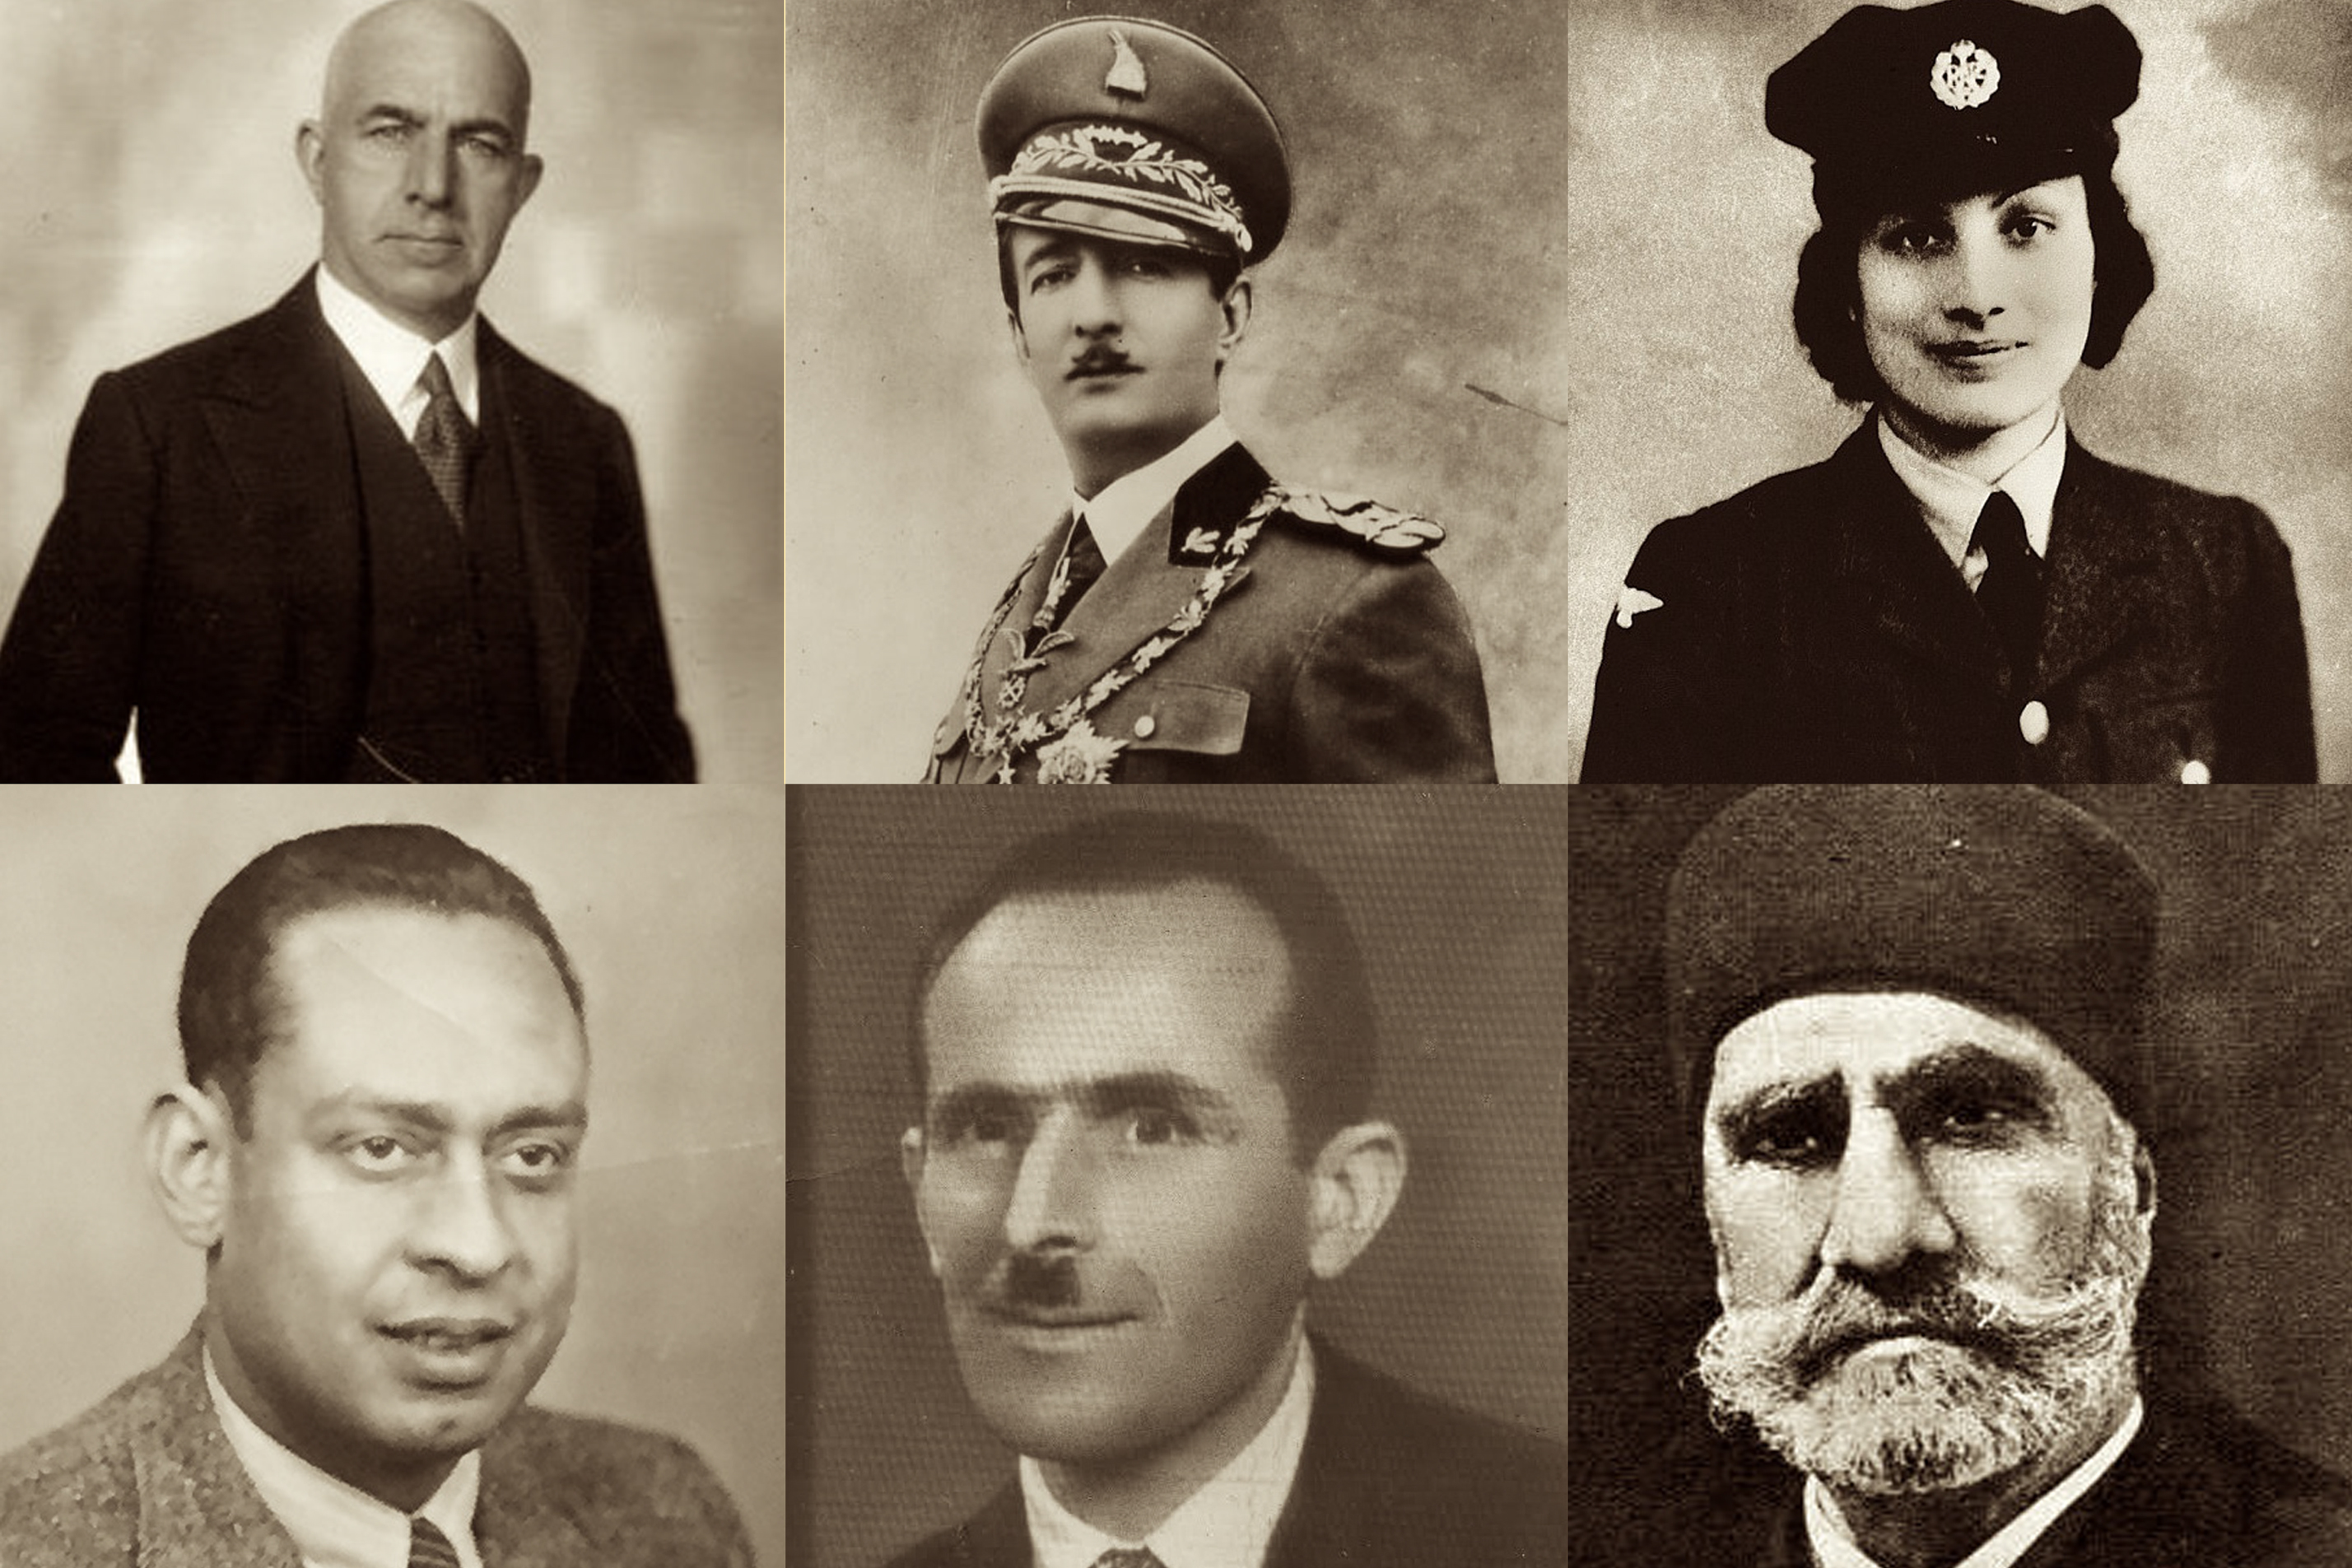 (Top row, left to right) Behic Erkin, King Zog I of Albania, Noor Inayat Khan; (Bottom row, left to right) Mohamed Helmy, Rifat Abdyl Hoxha, Ahmed Pasha Bey